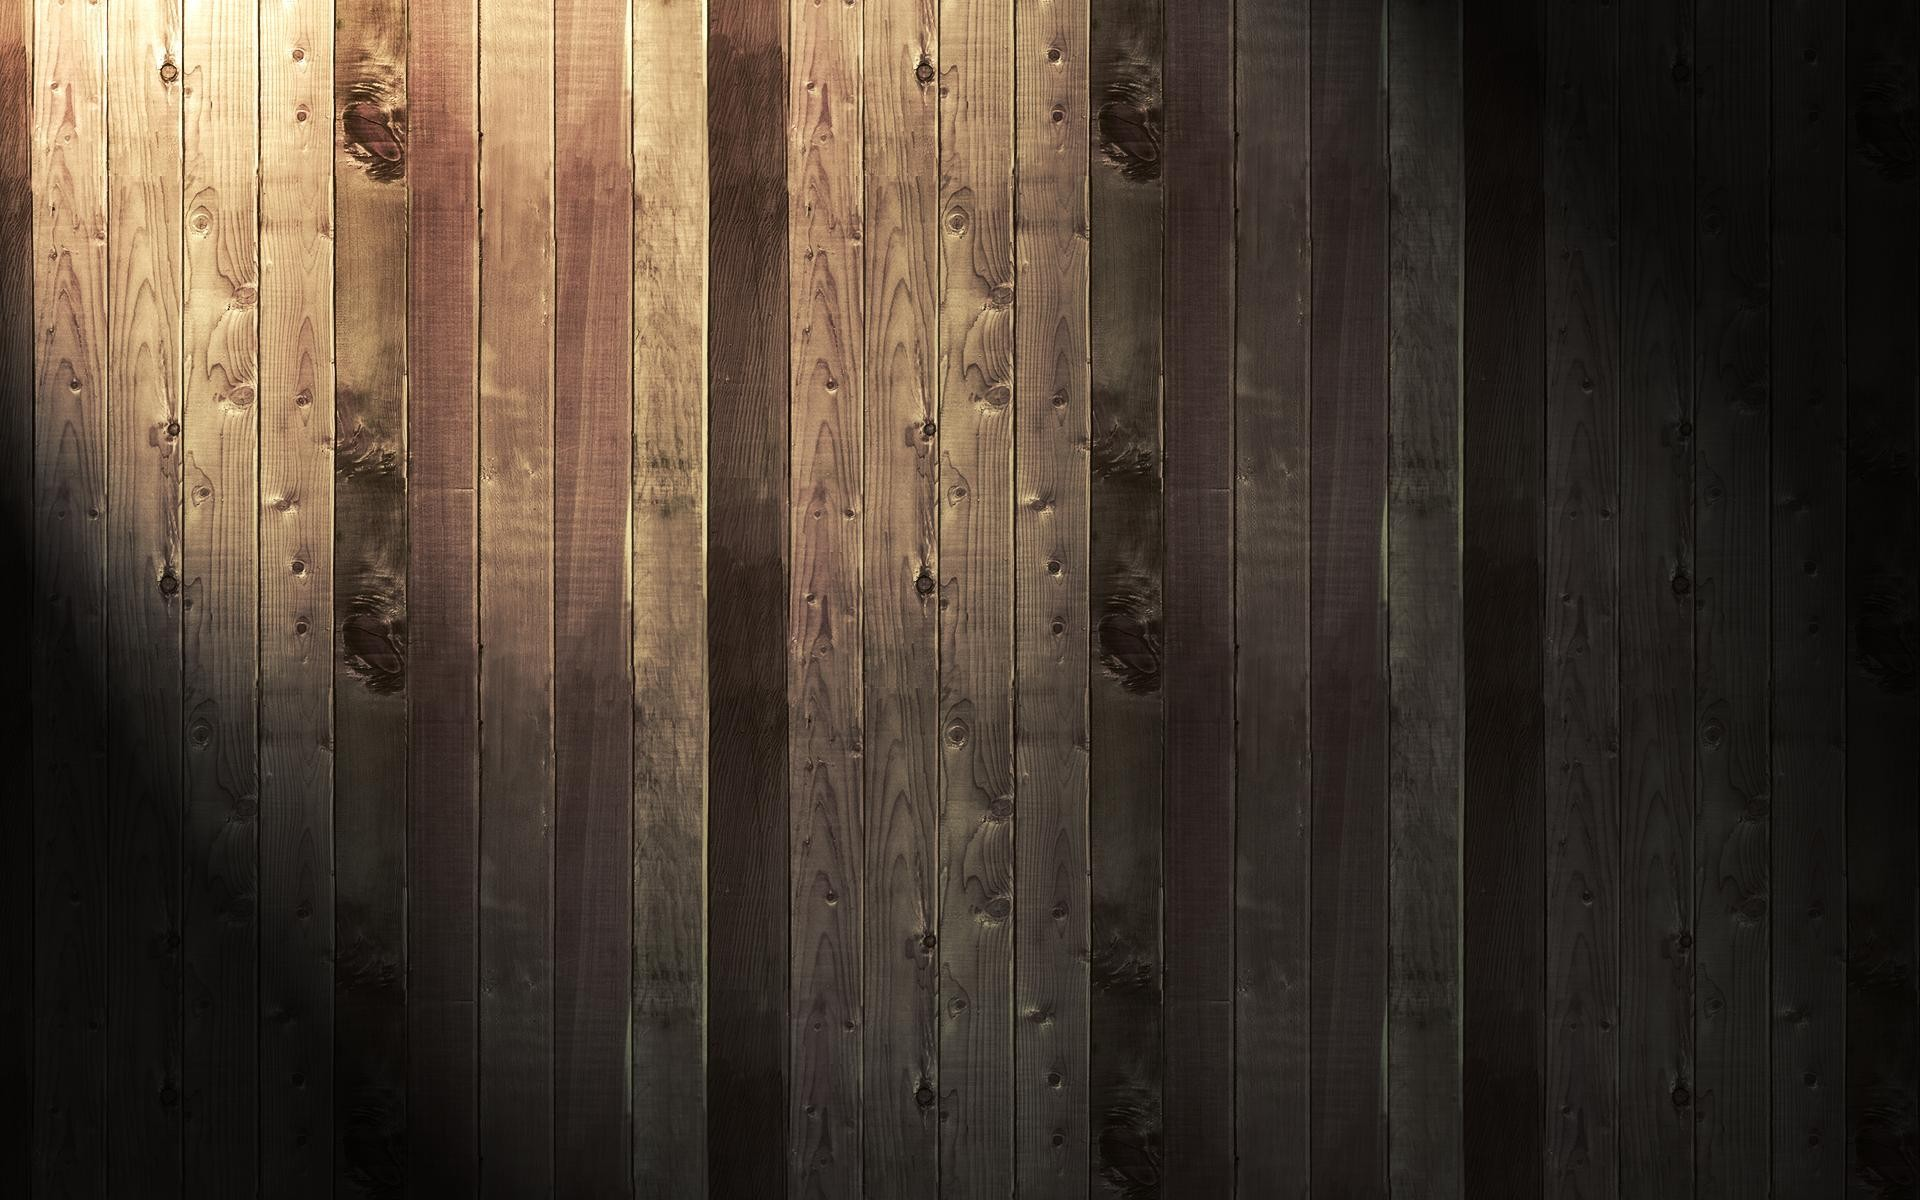 rate select rating give 3d wood wall 1 5 give 3d wood 1920x1200